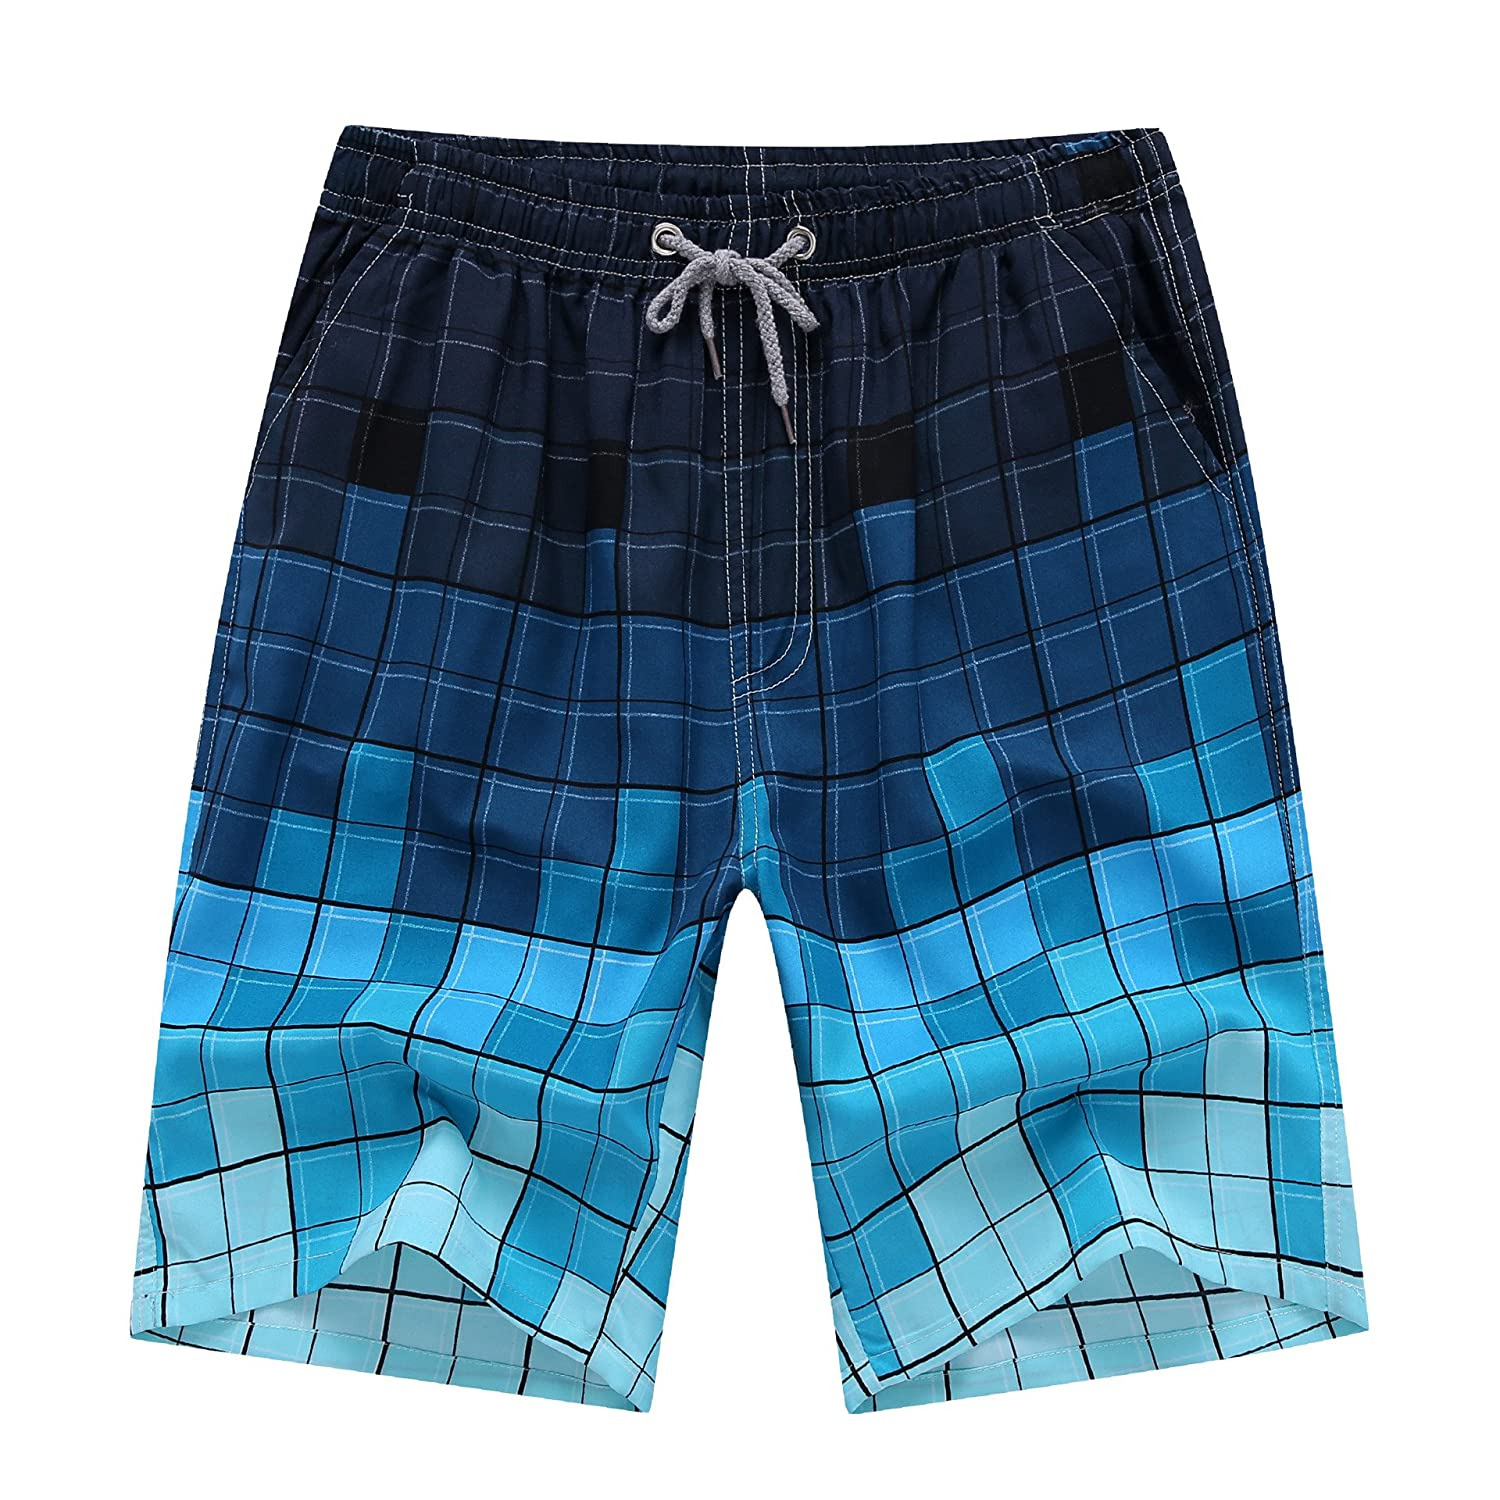 Board Shorts Beach Men Board Short Mens Quick-dry Shorts Summer Male Striped Loose Breathable Colorful Fashion Korean Style Elastic Waist New